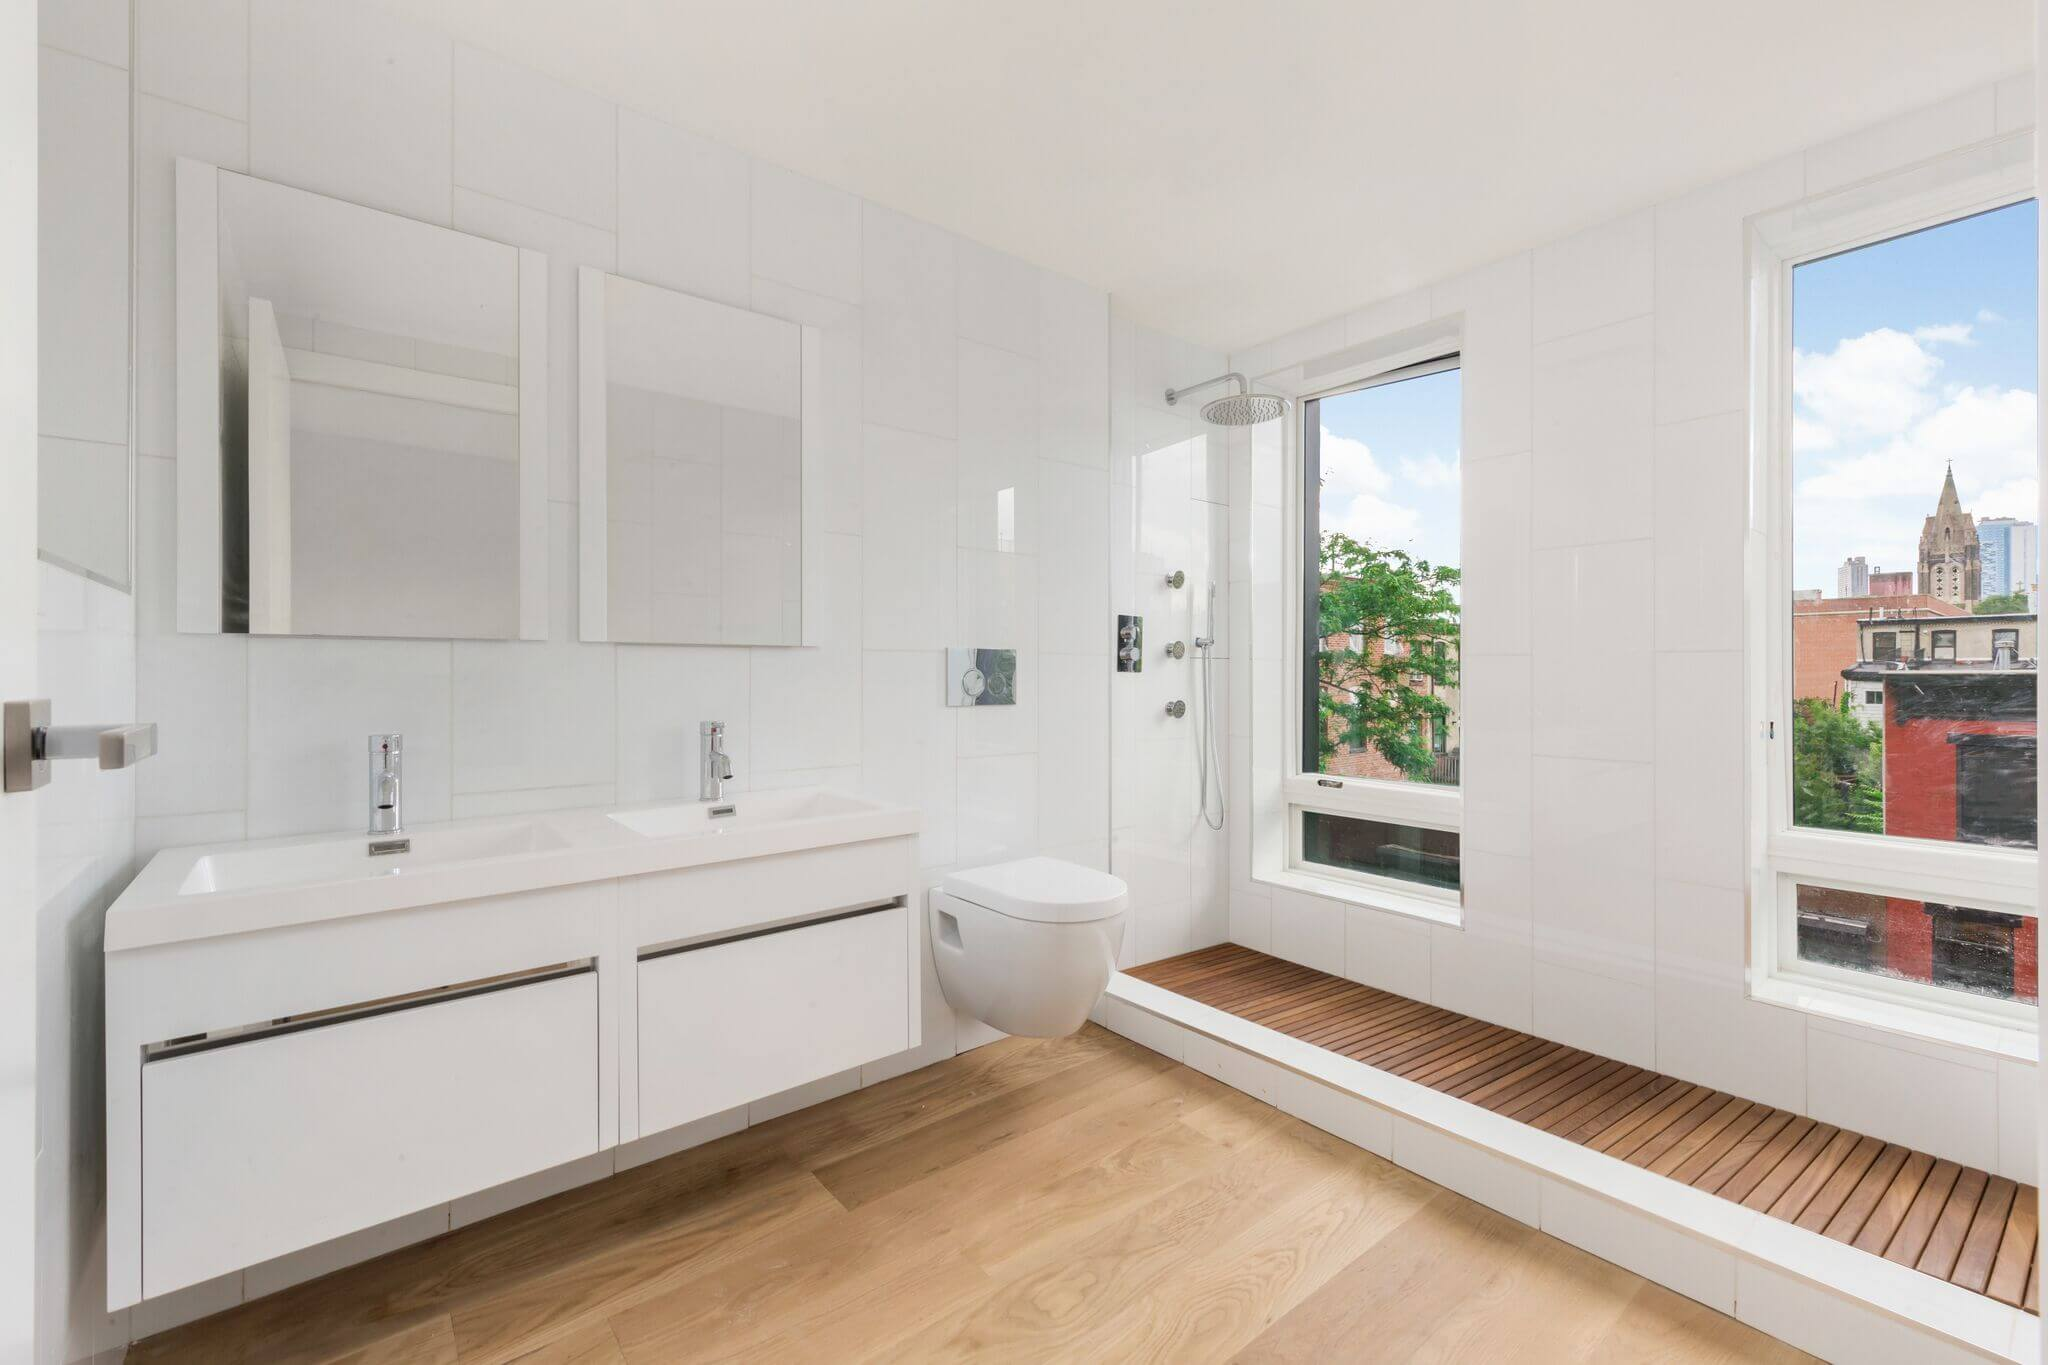 Spacious Half Bath in a Luxury Real Estate Development